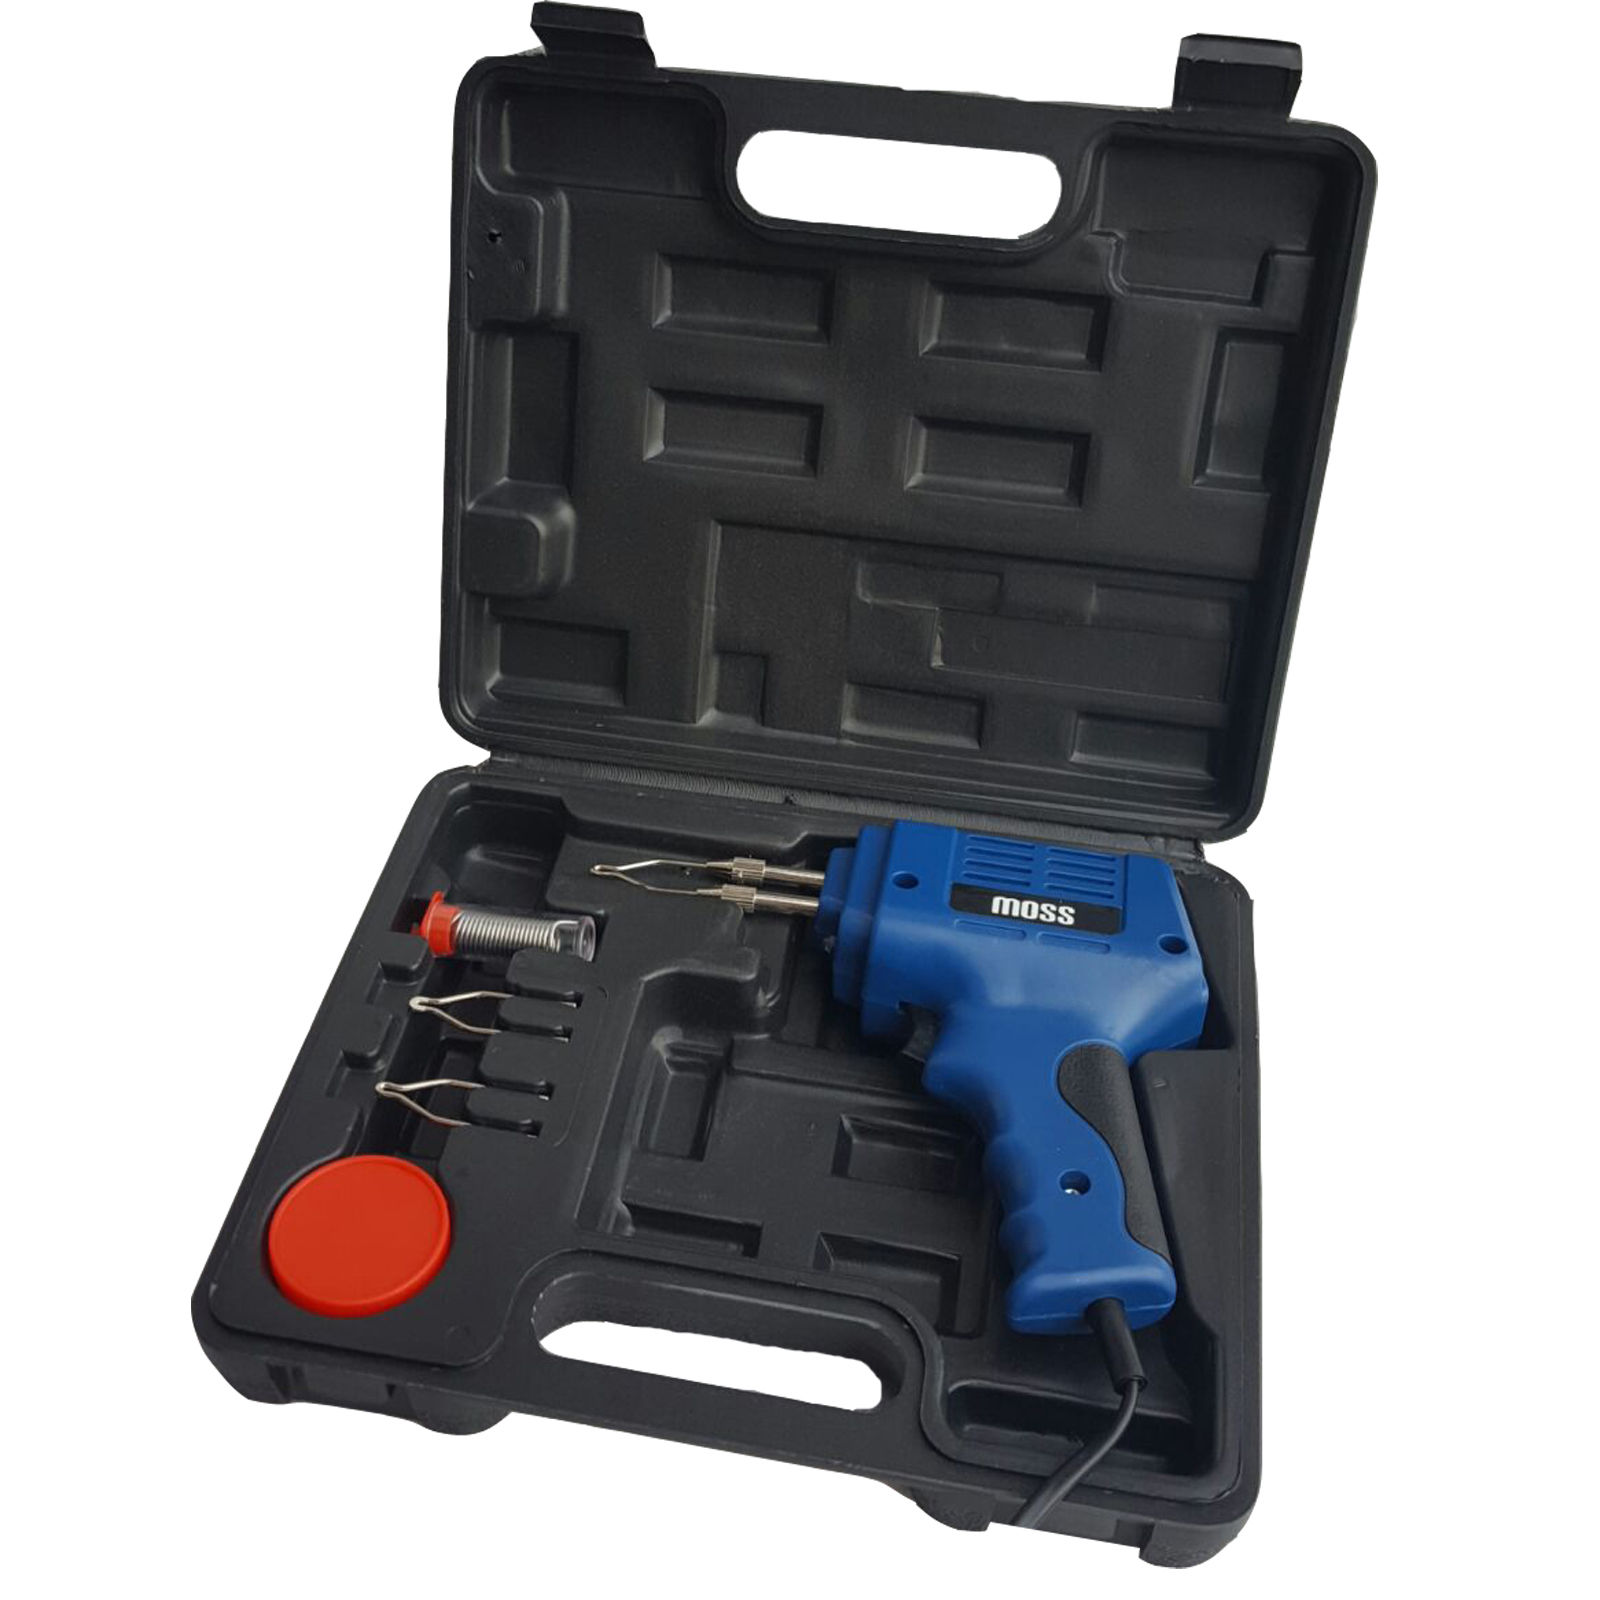 175W ELECTRIC ELECTRICAL SOLDER SOLDERING IRON GUN KIT 230V